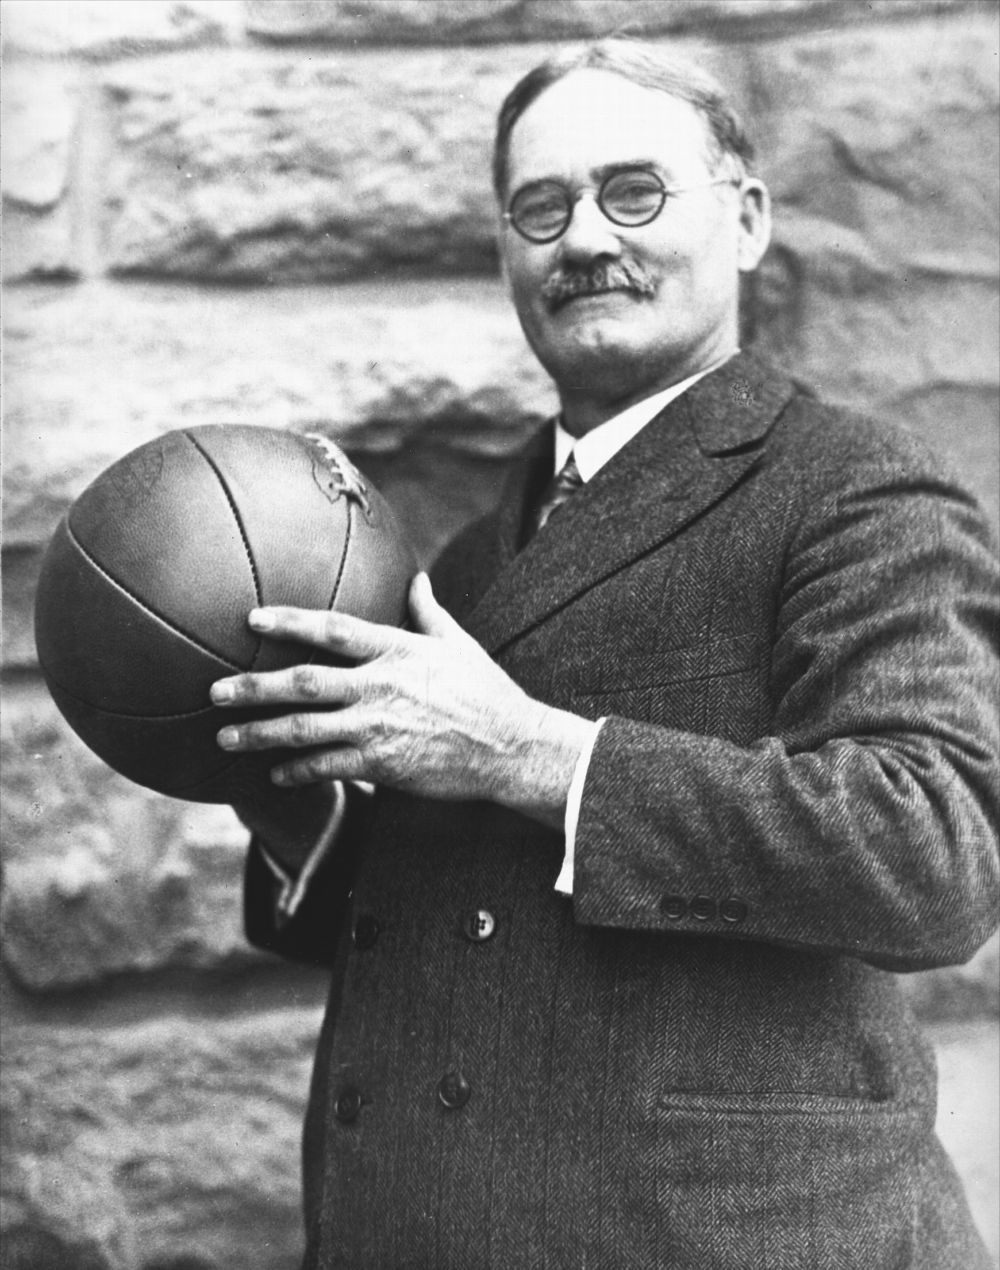 Inspirational Basketball Quotes - James Naismith